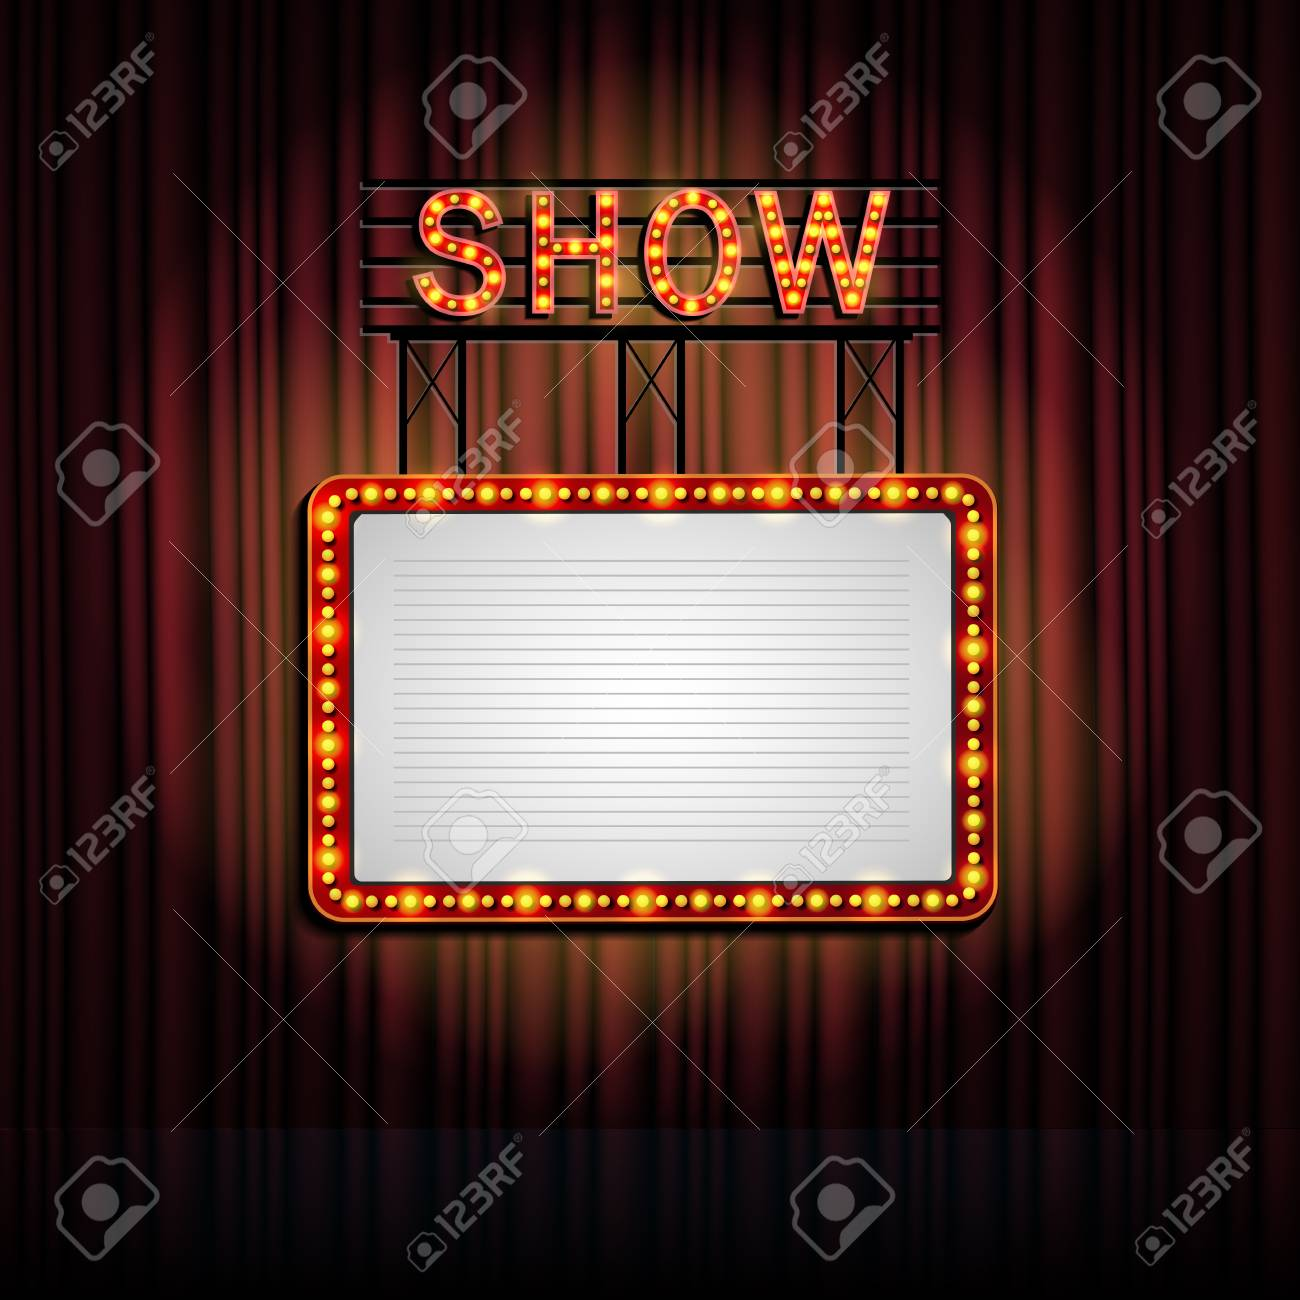 Showtime Retro Sign With Curtain Background Stock Photo Picture 1300x1300